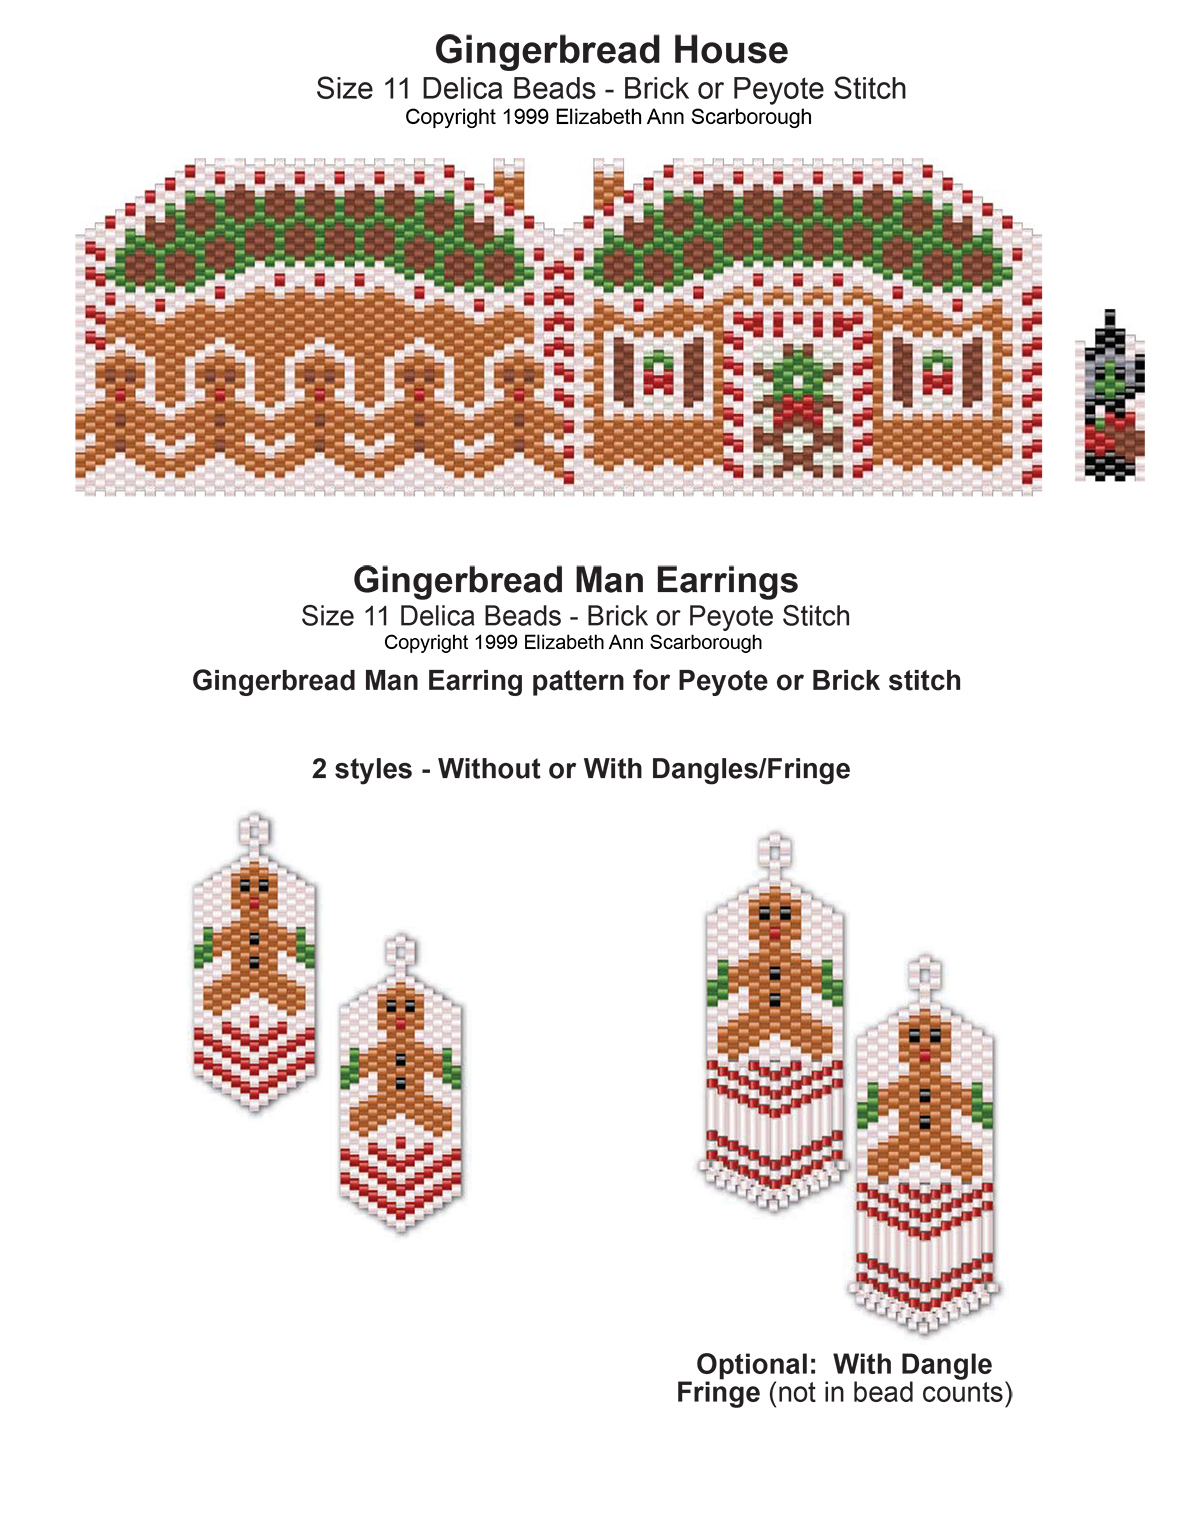 Gingerbread House and Gingerbread Man Earrings